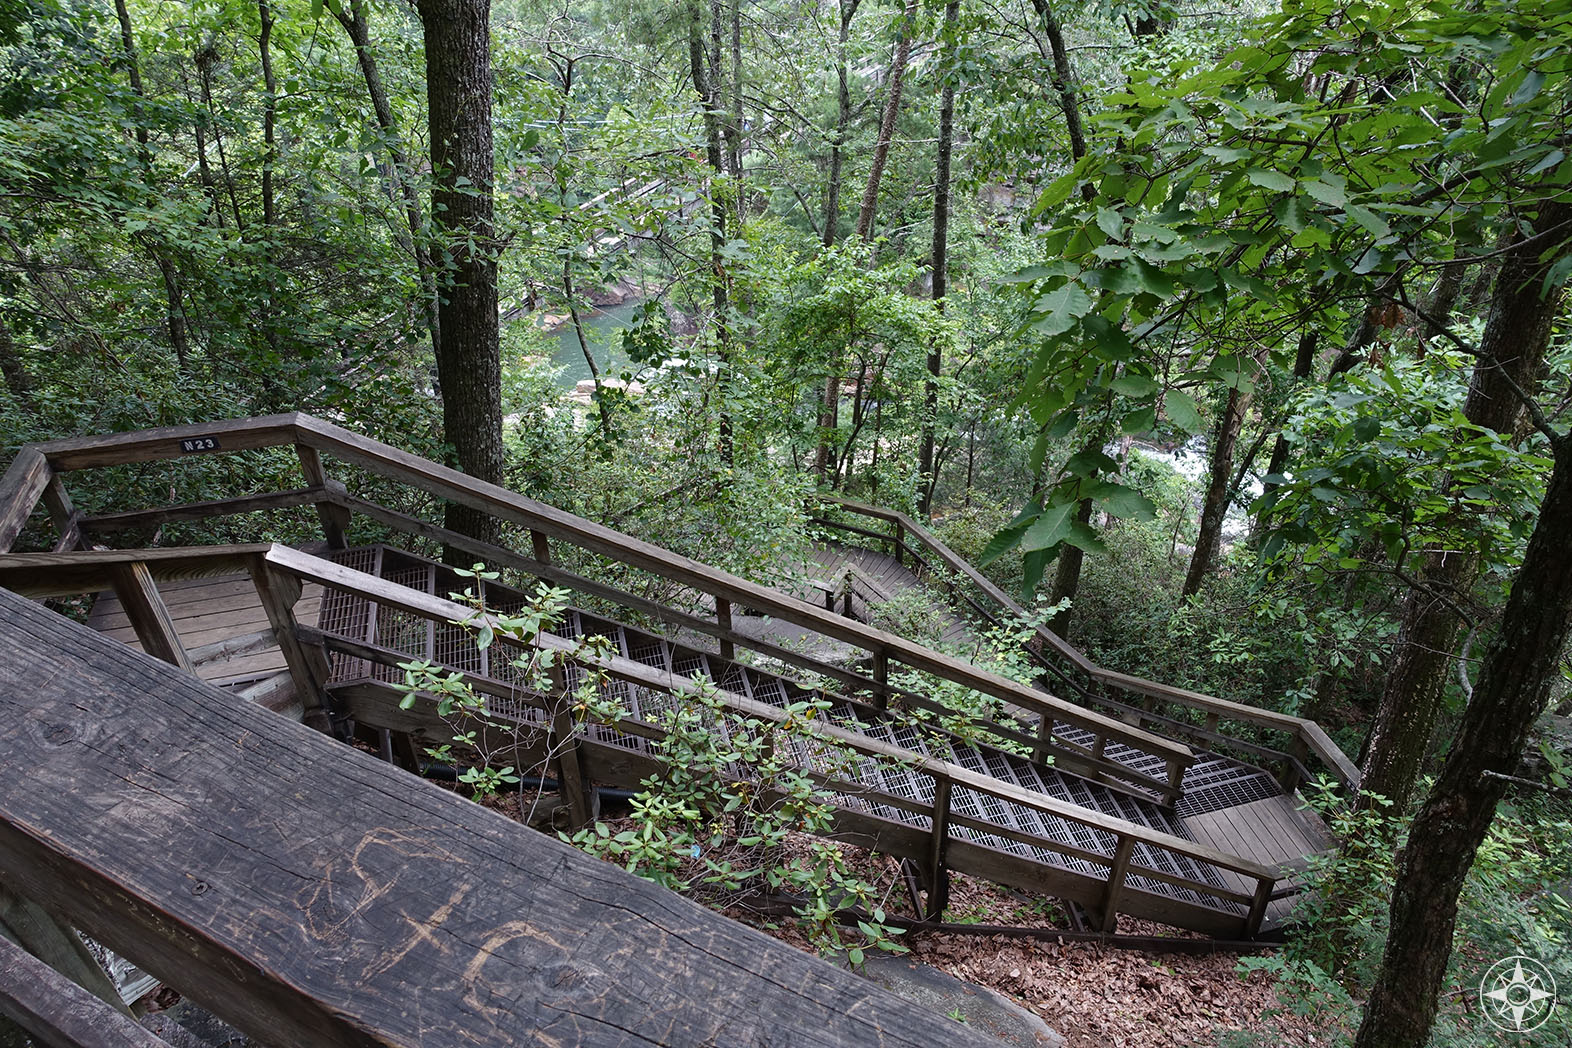 Tallulah Gorge Stairs, Staircase trail in the woods down to Tallulah Falls suspension bridge, 1000 steps, Hurricane Falls Trail